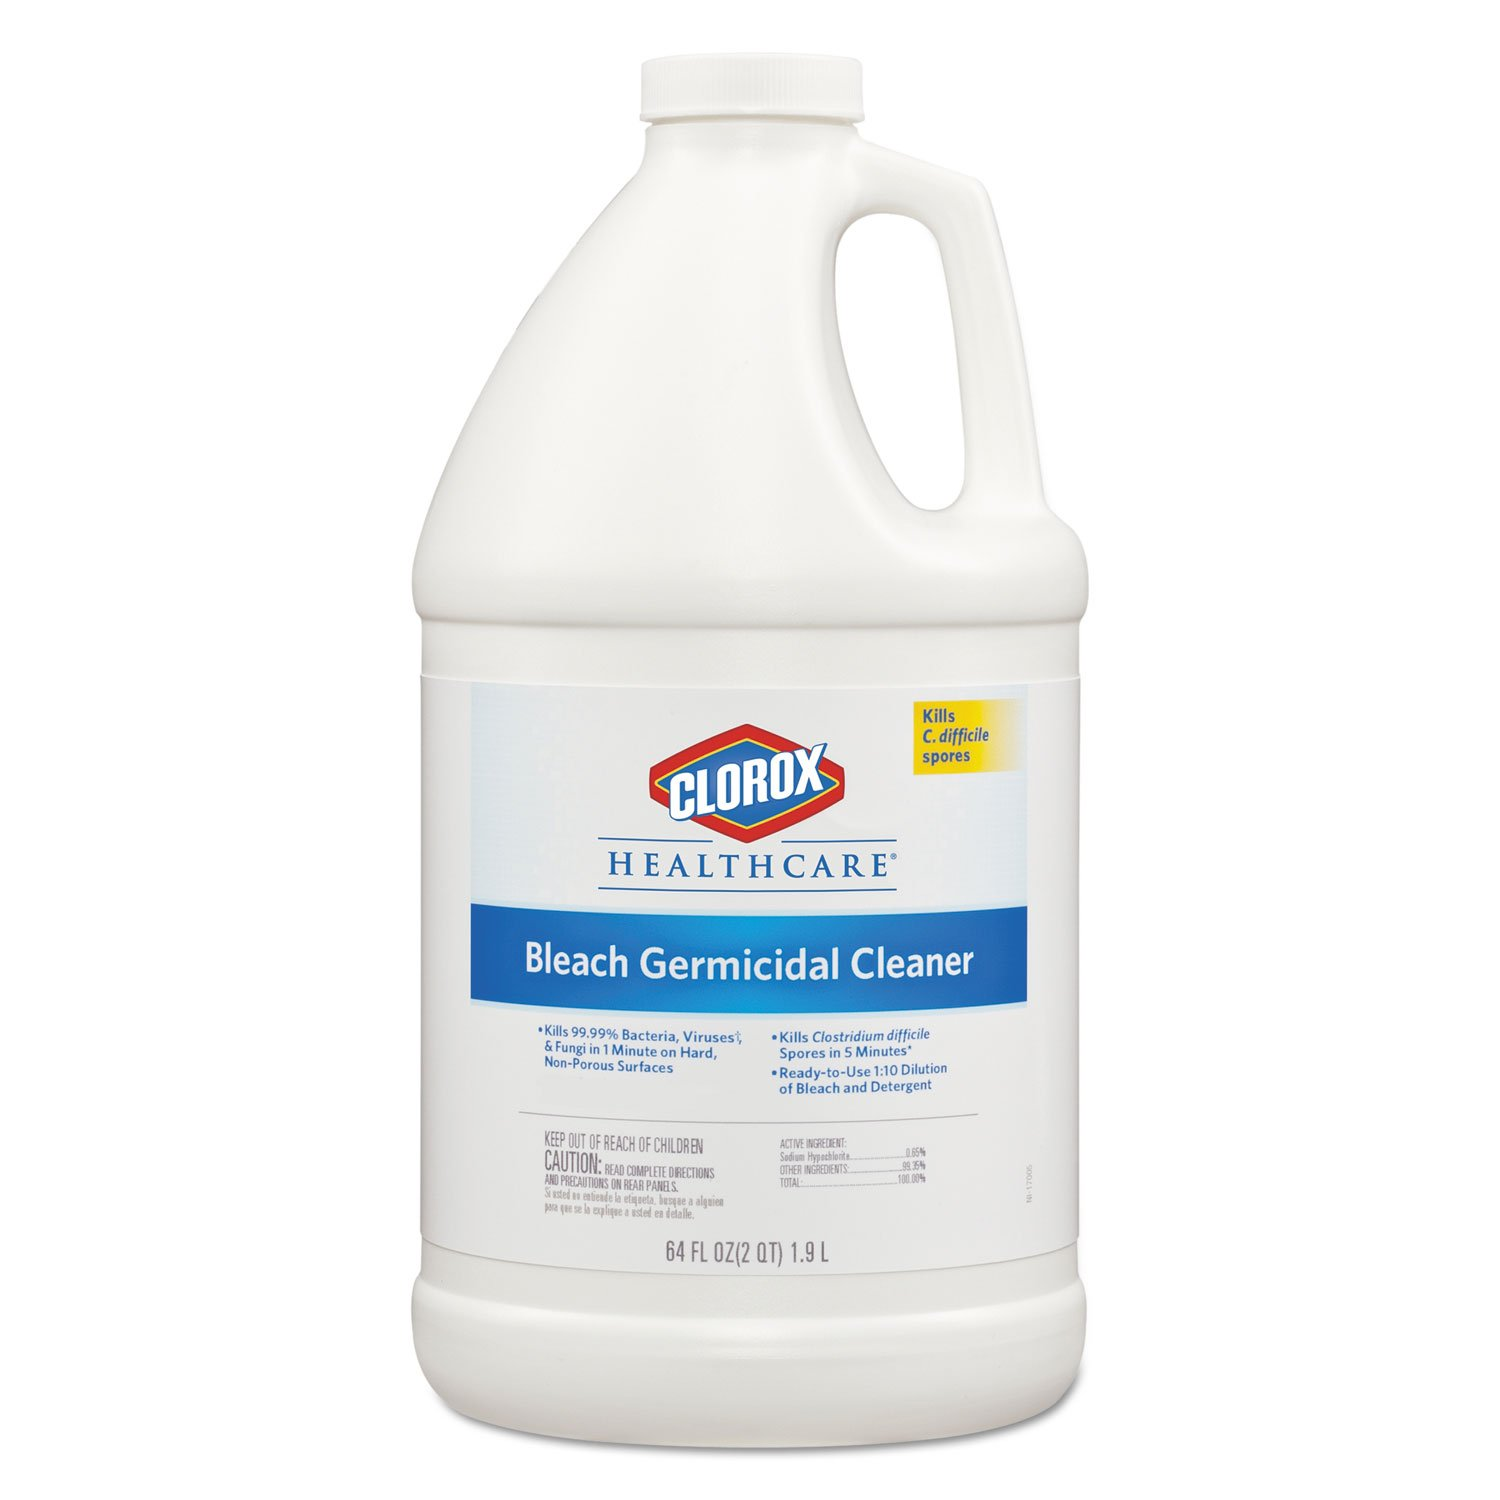 Healthcare Hospital Cleaner Disinfectant with Bleach